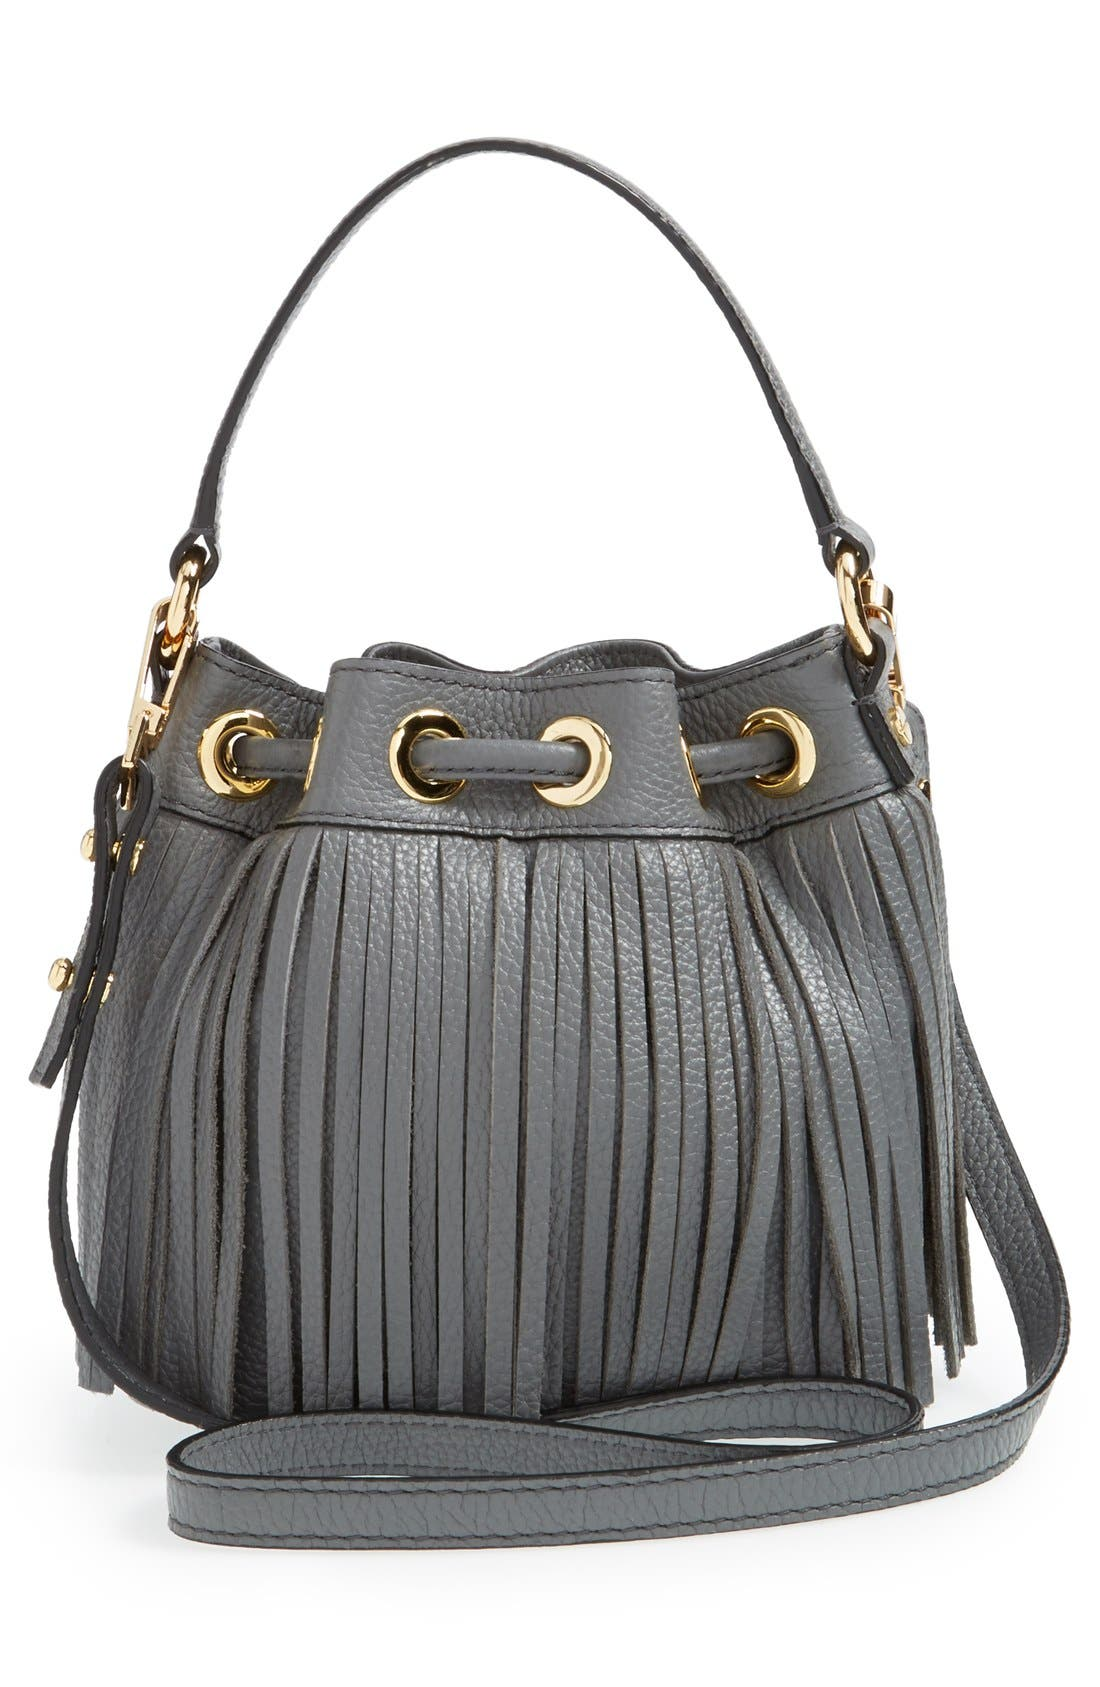 Alternate Image 3  - Milly 'Small Essex' Fringed Leather Drawstring Bag